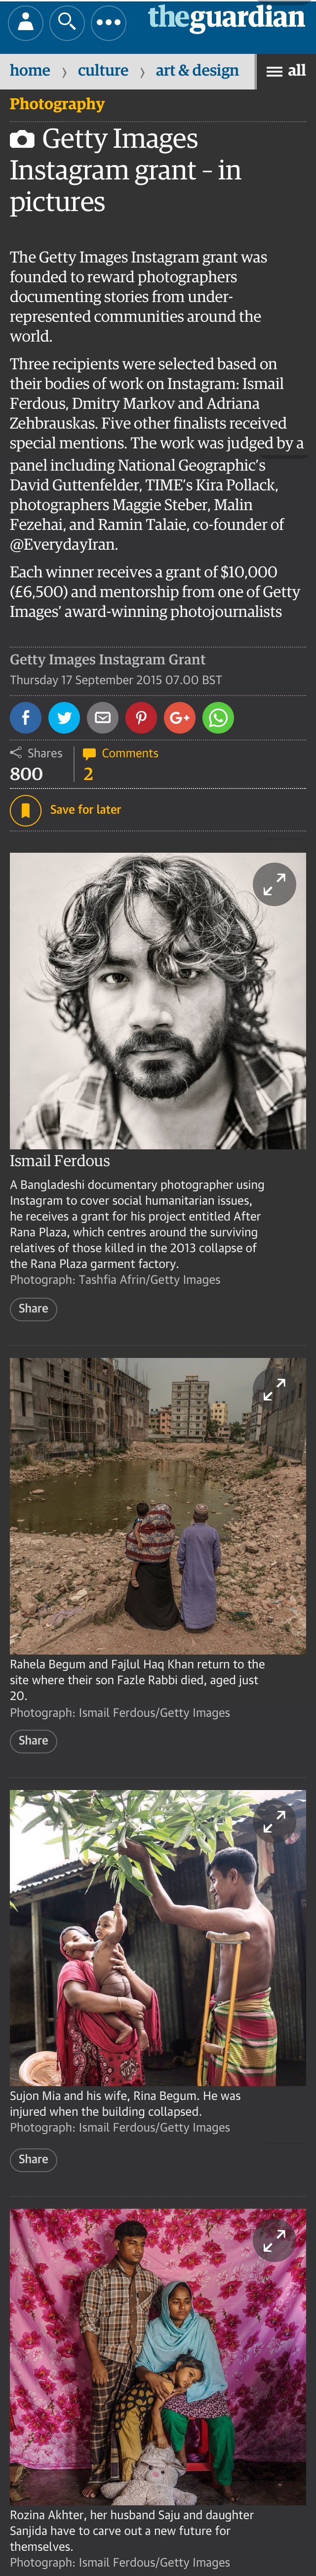 Getty Images Instagram grant – in pictures